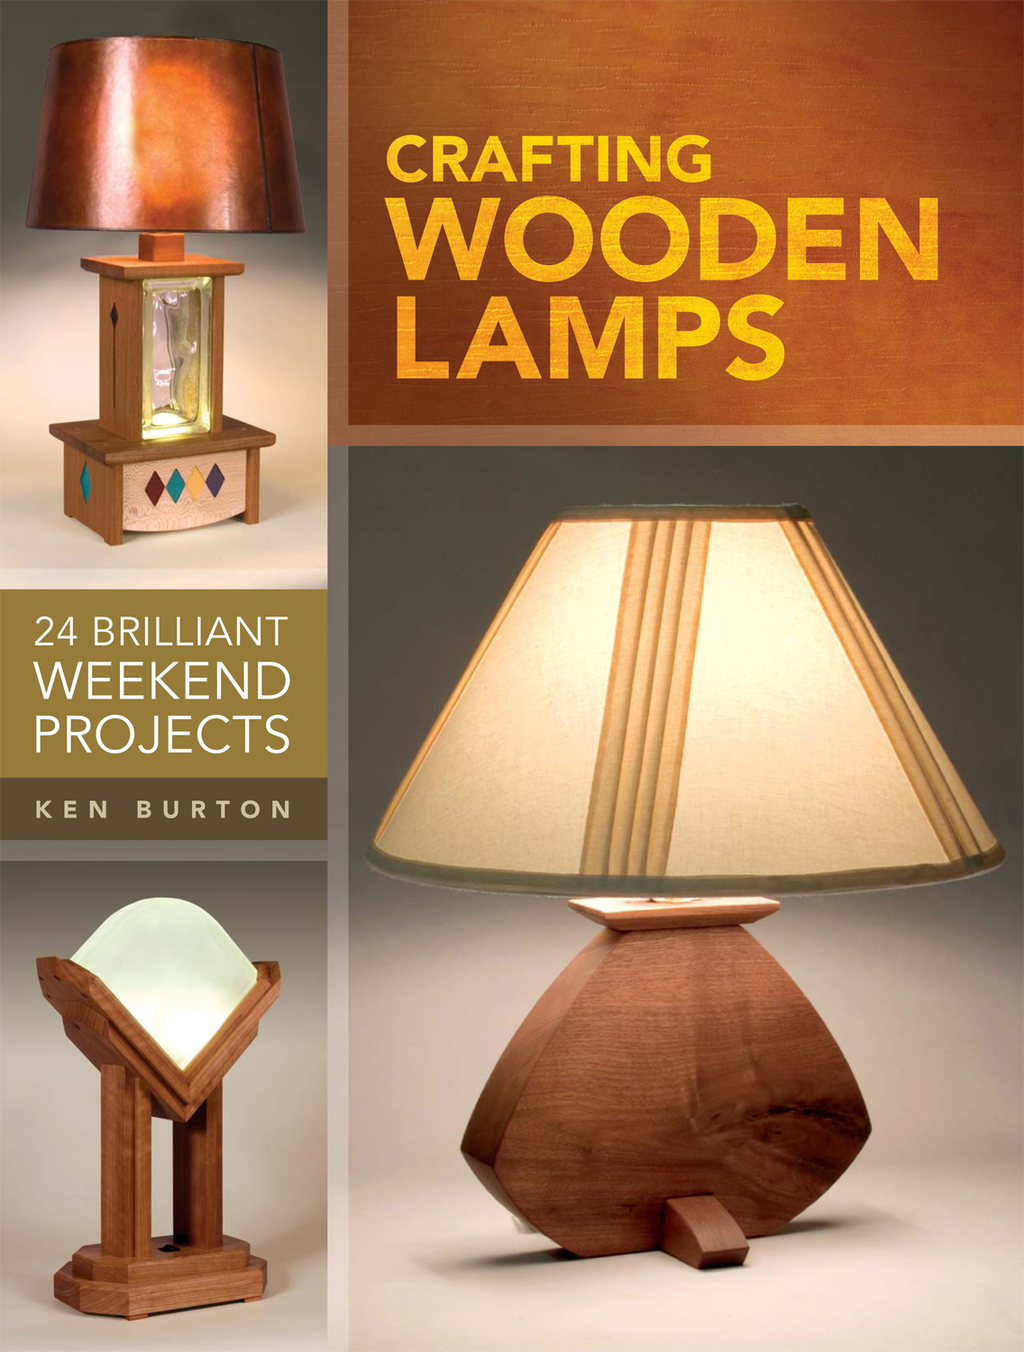 Crafting Wooden Lamps 24 Brilliant Weekend Projects